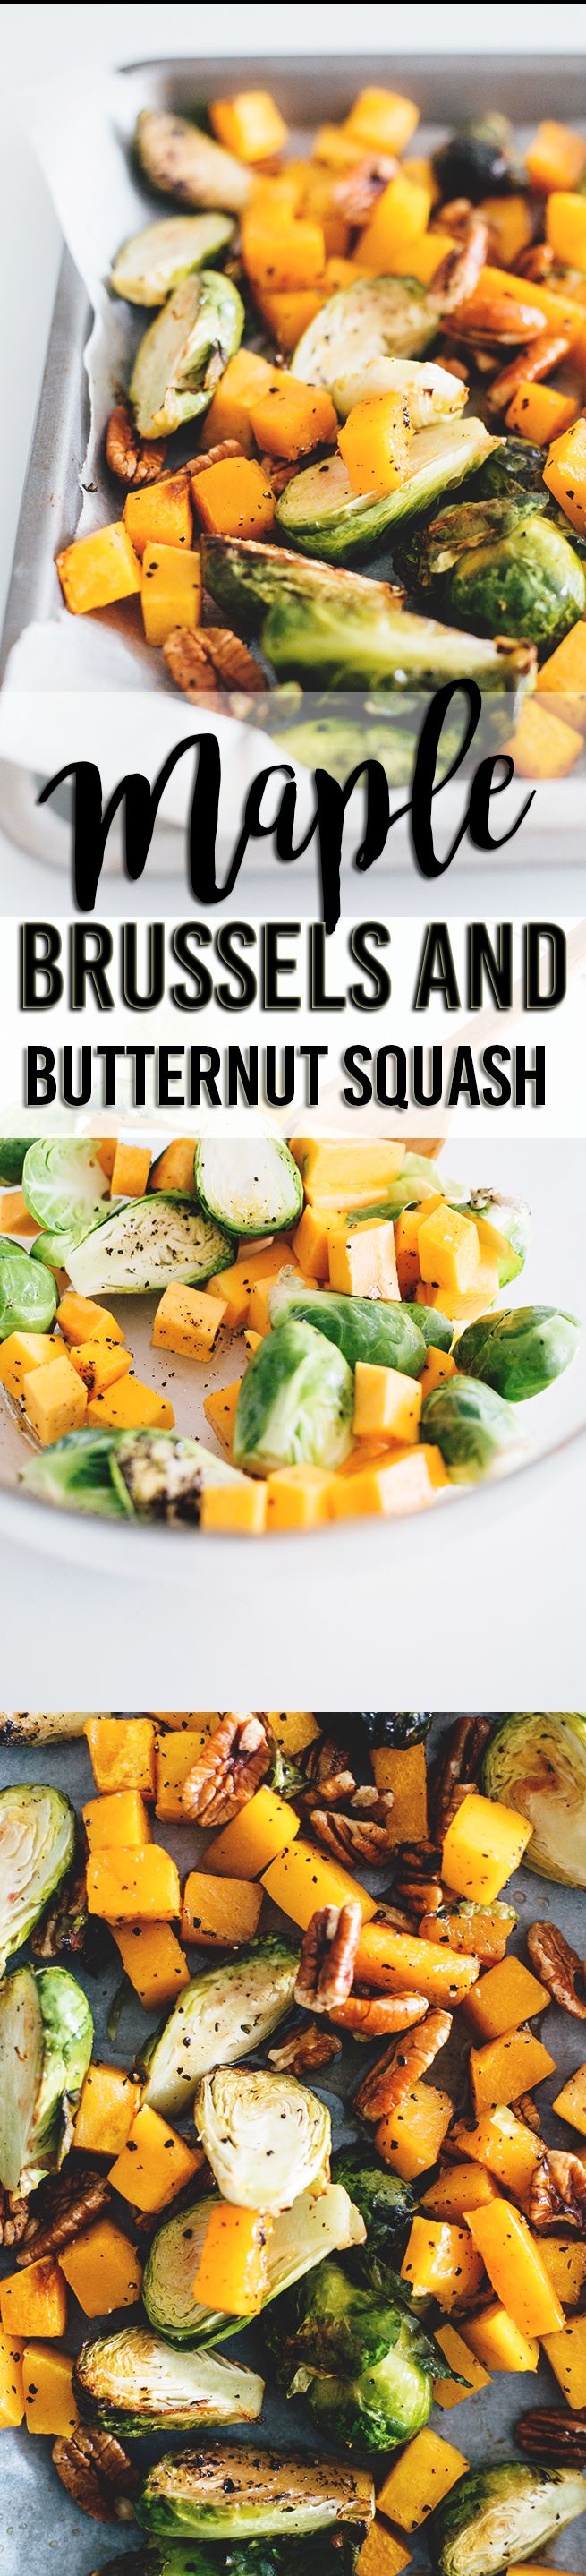 Maple Roasted Brussels Sprouts And Butternut Squash - healthy and delicious side dish to any meal. Vegan, Gluten Free, Low in Fat, Easy To Make. #vegan #veggies #vegetarian #maple #brussels #sprouts #squash